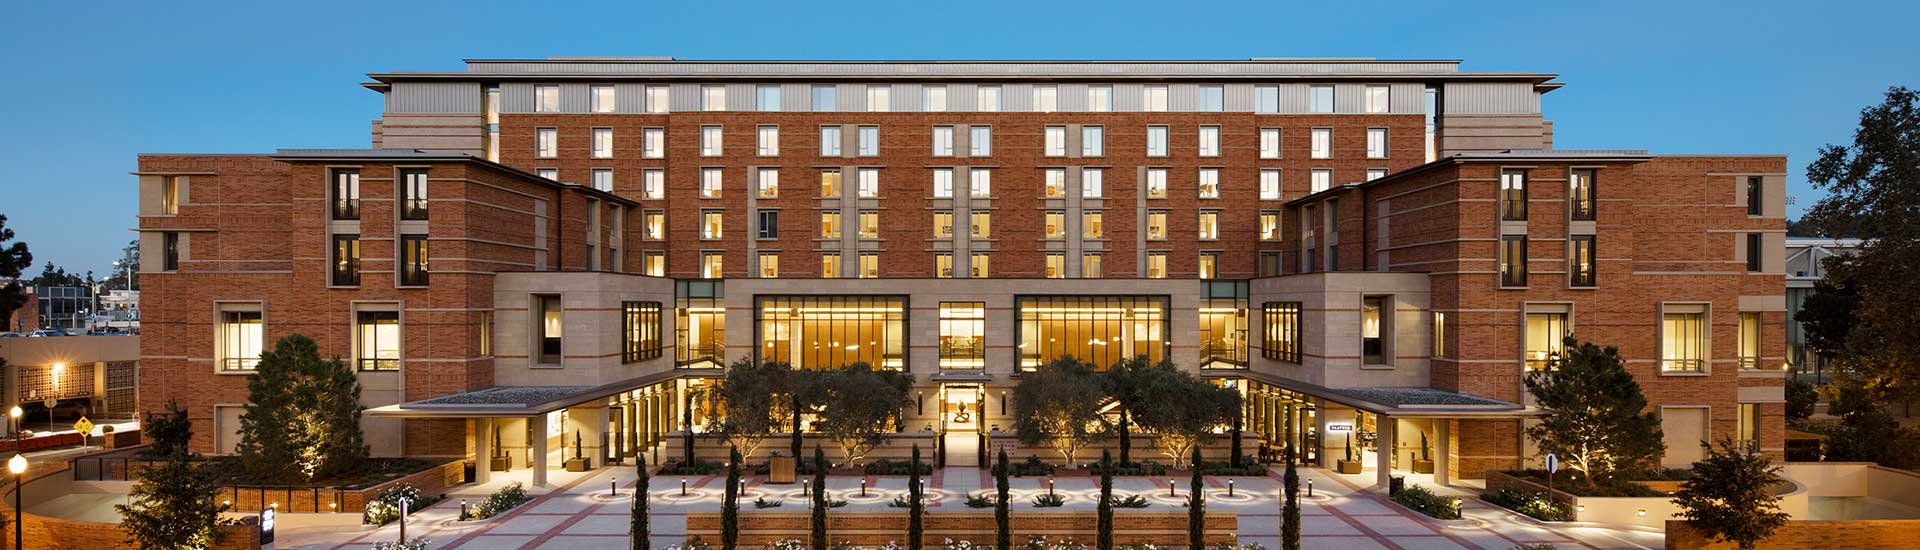 Ucla Luskin Conference Center Hotel